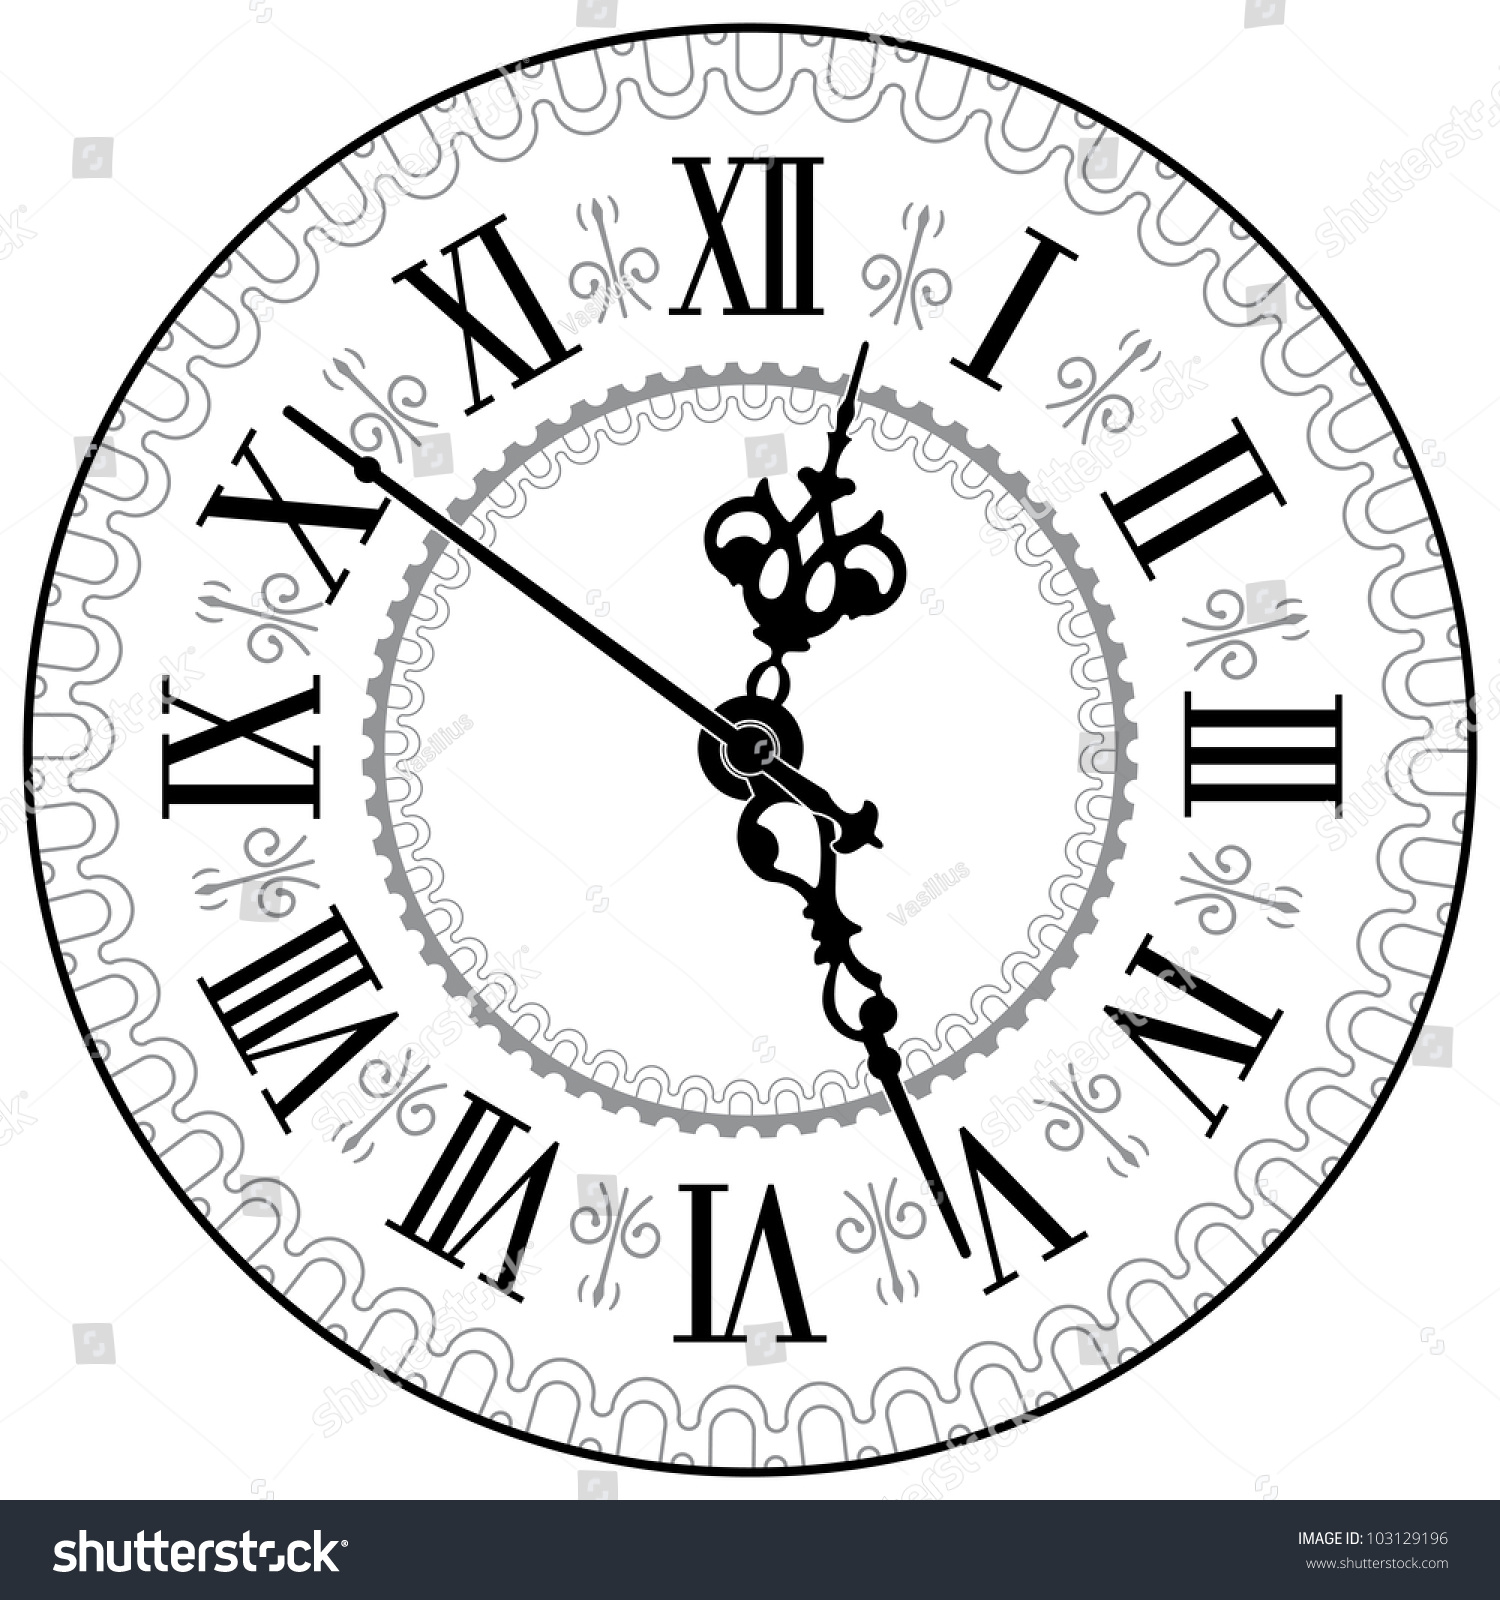 Antique Clock Vector Illustration Stock Vector 103129196